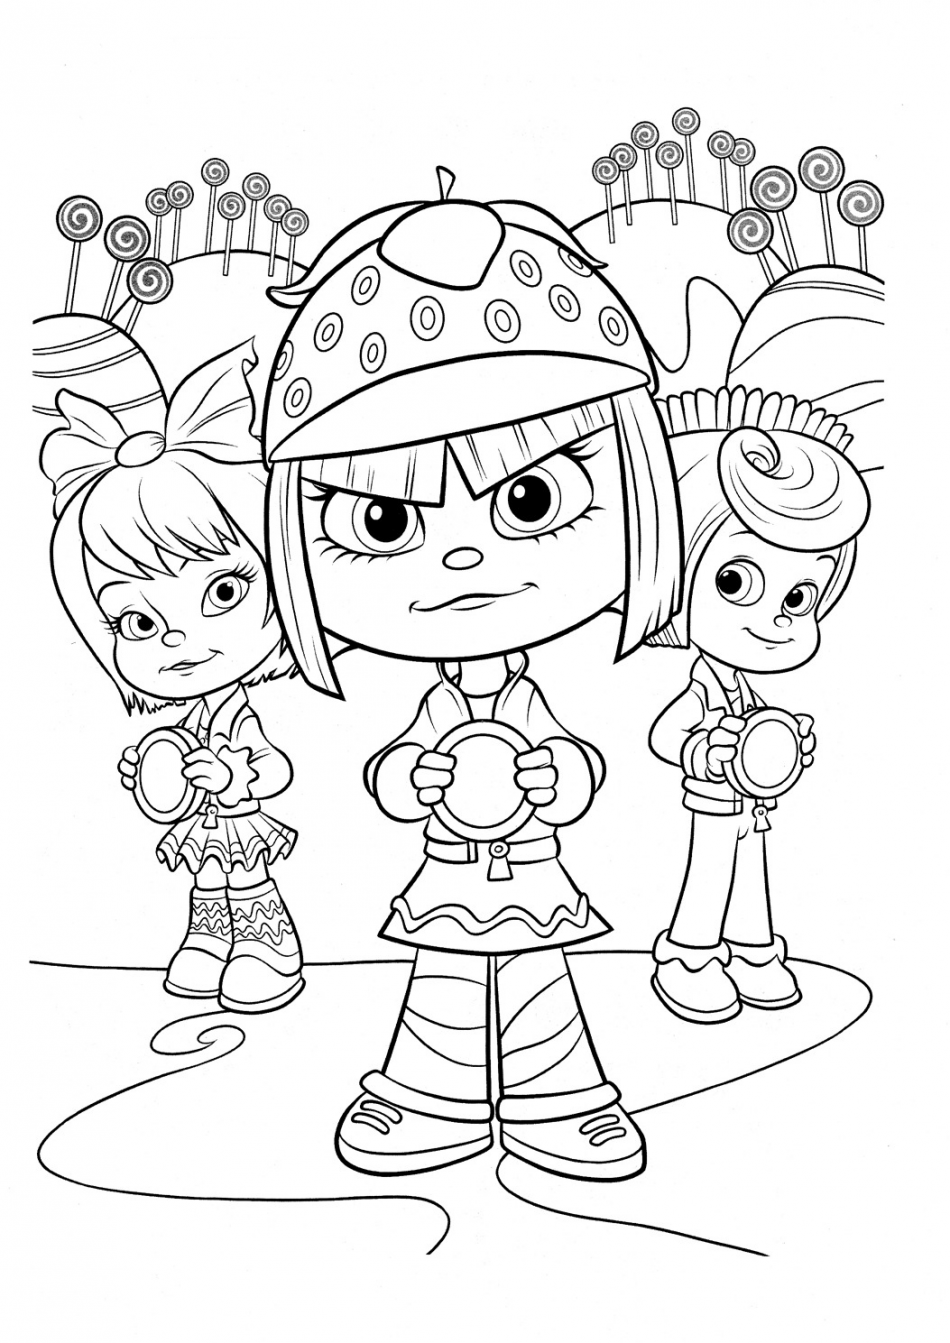 Disney Taffyta Muttonfudge and Friends Coloring